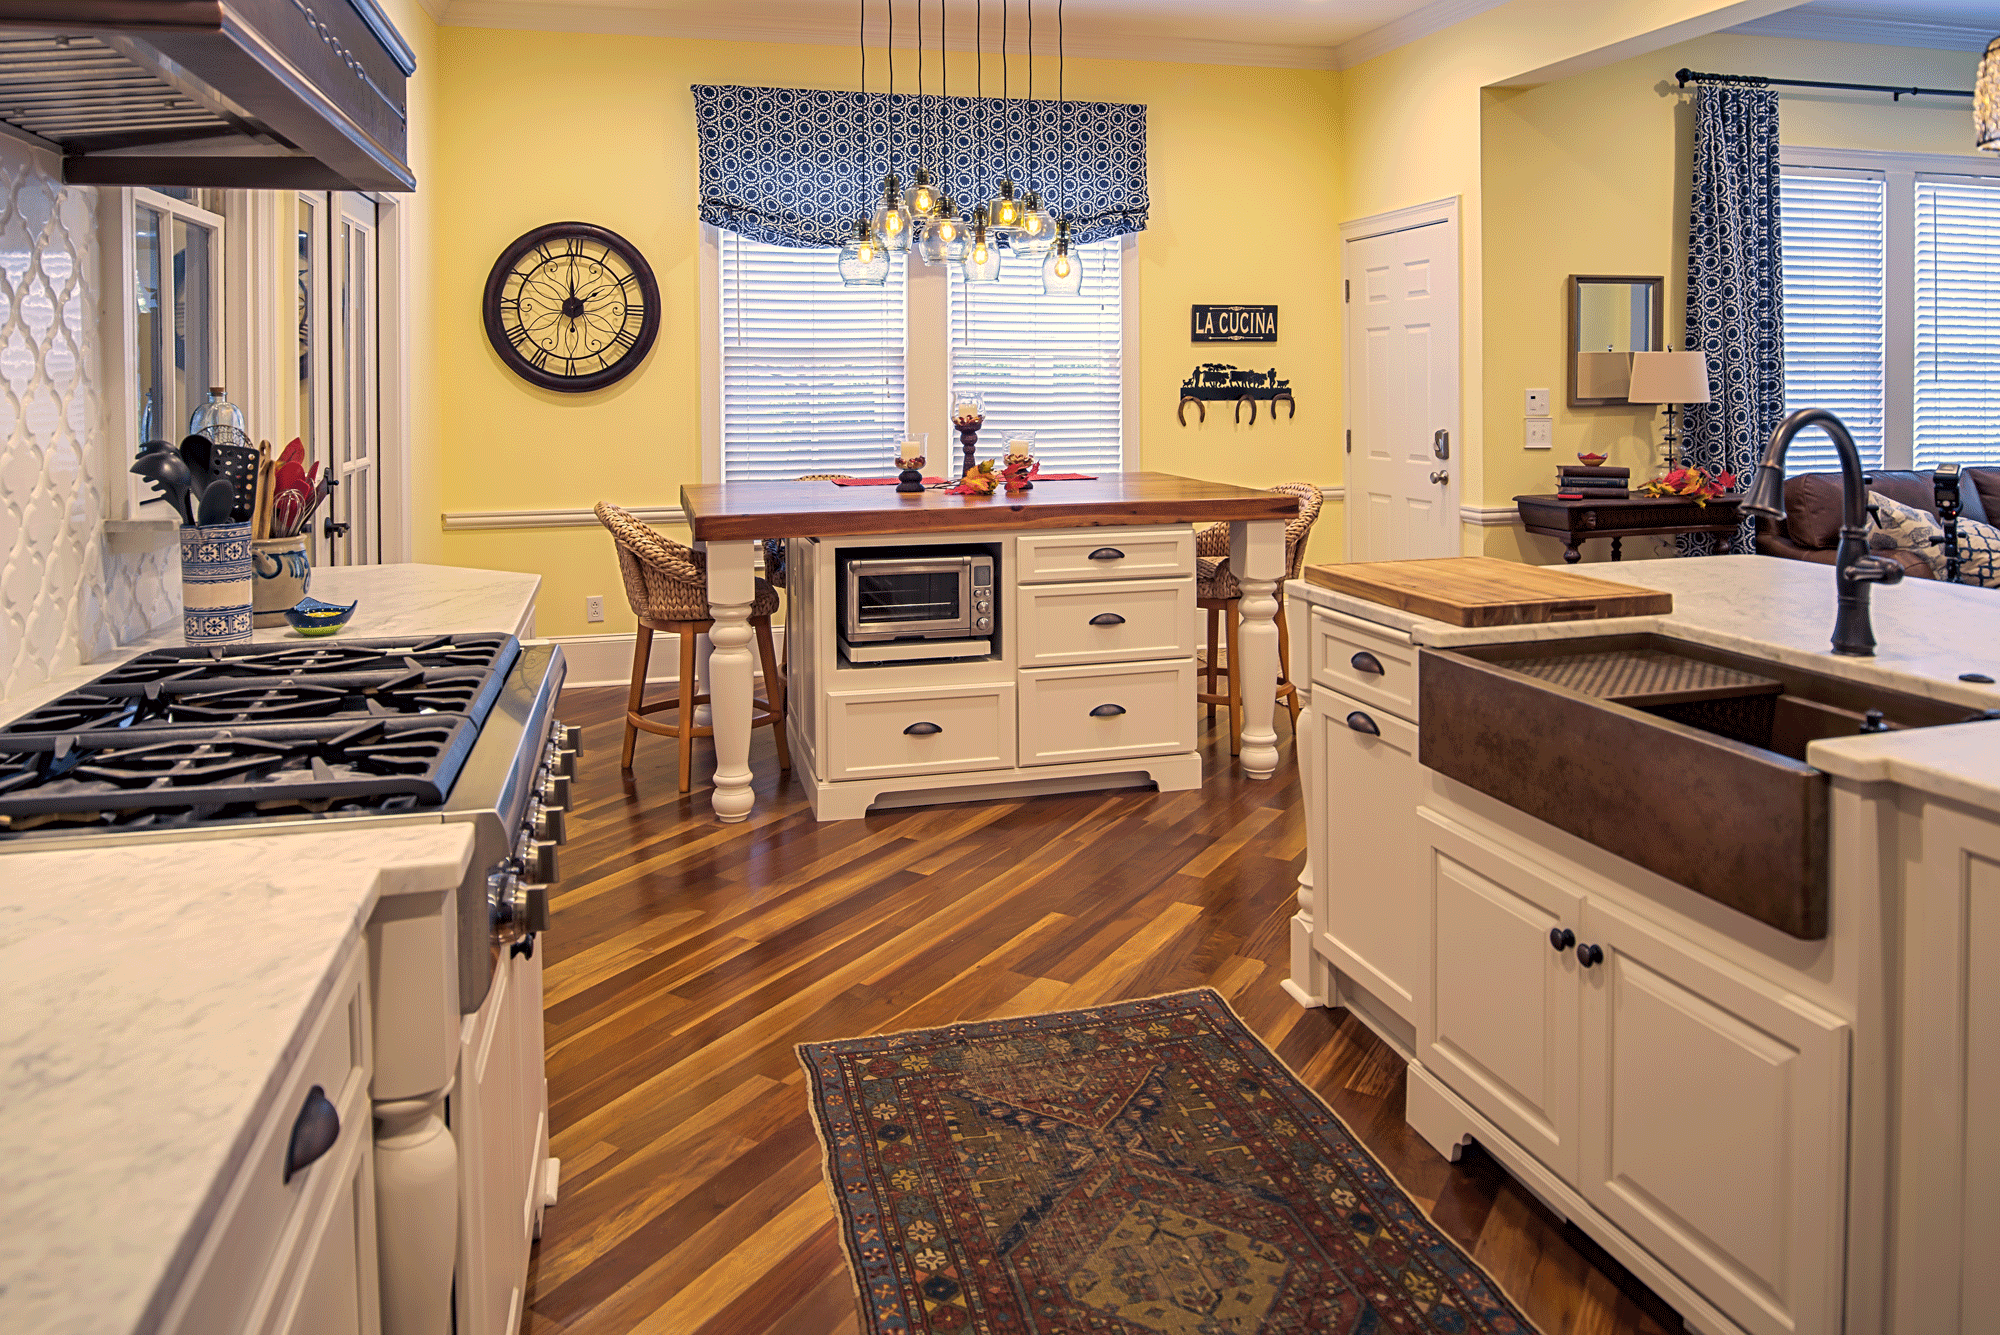 kitchen remodel with butcher block island, cabinets, bar seating, pendant lighting, decor